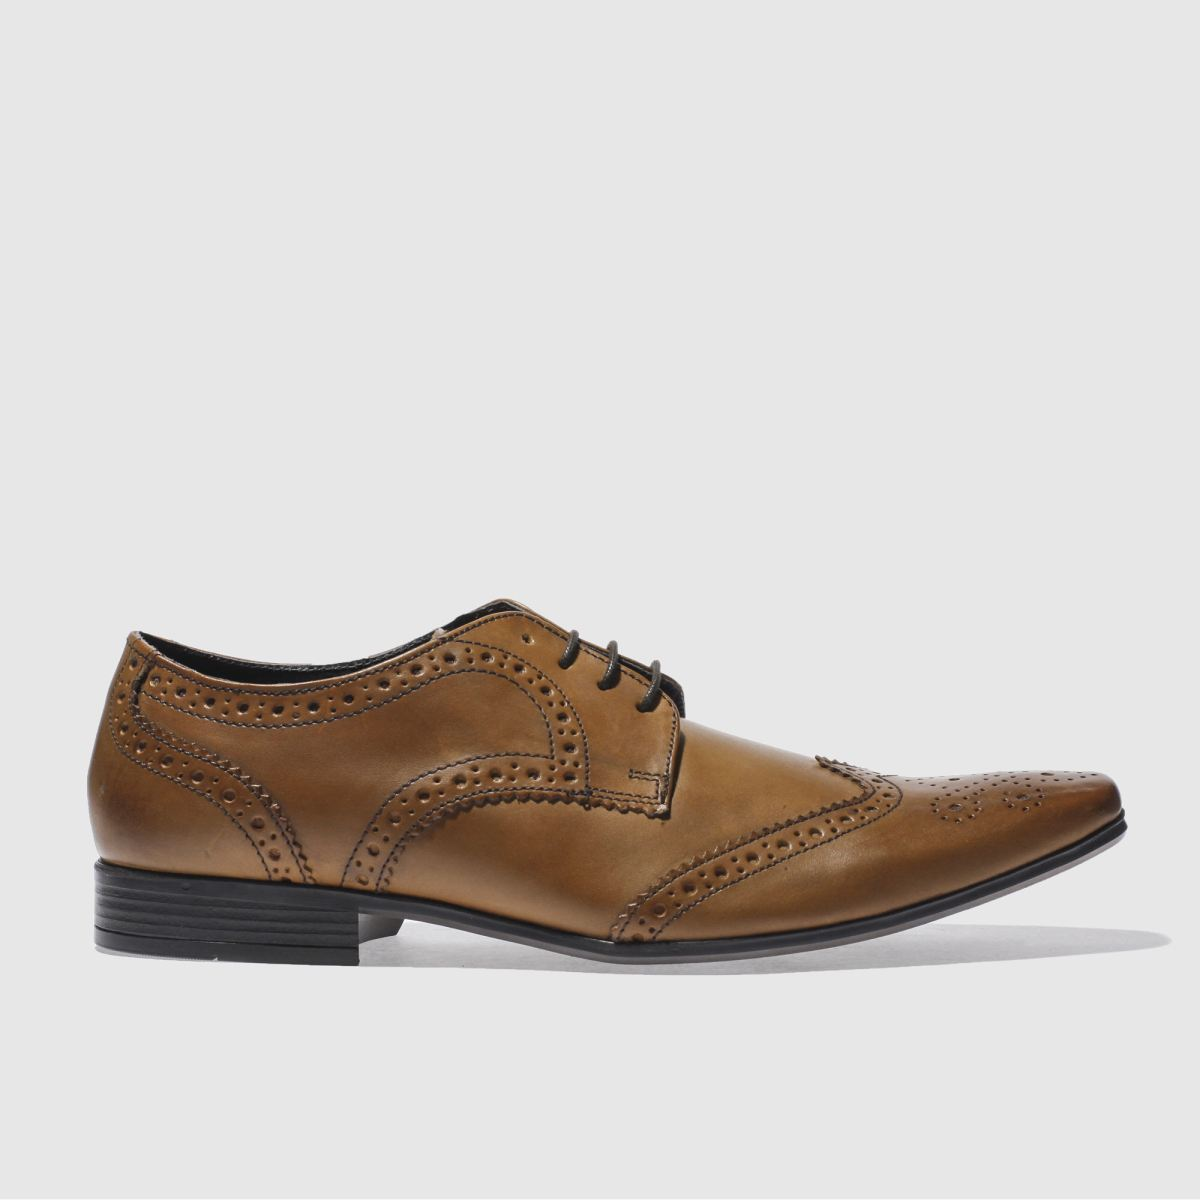 Ikon Ikon Tan Hugo Wing Brogue Shoes